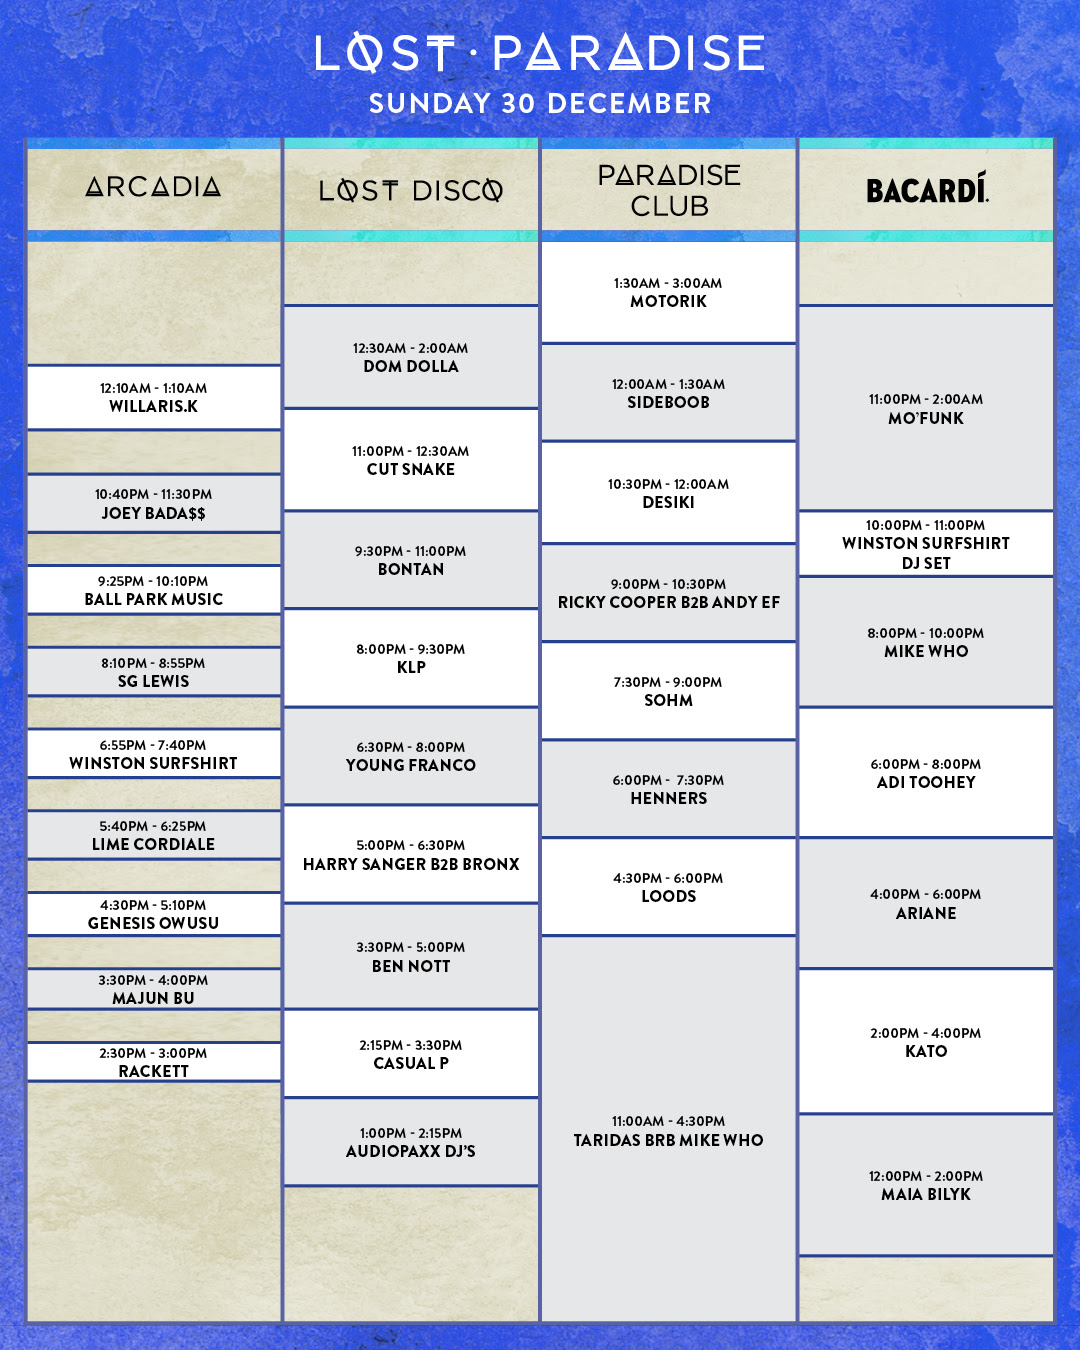 The Lost Paradise 2018 Set Times Are Here   Utter Buzz! 061899c4cf9b